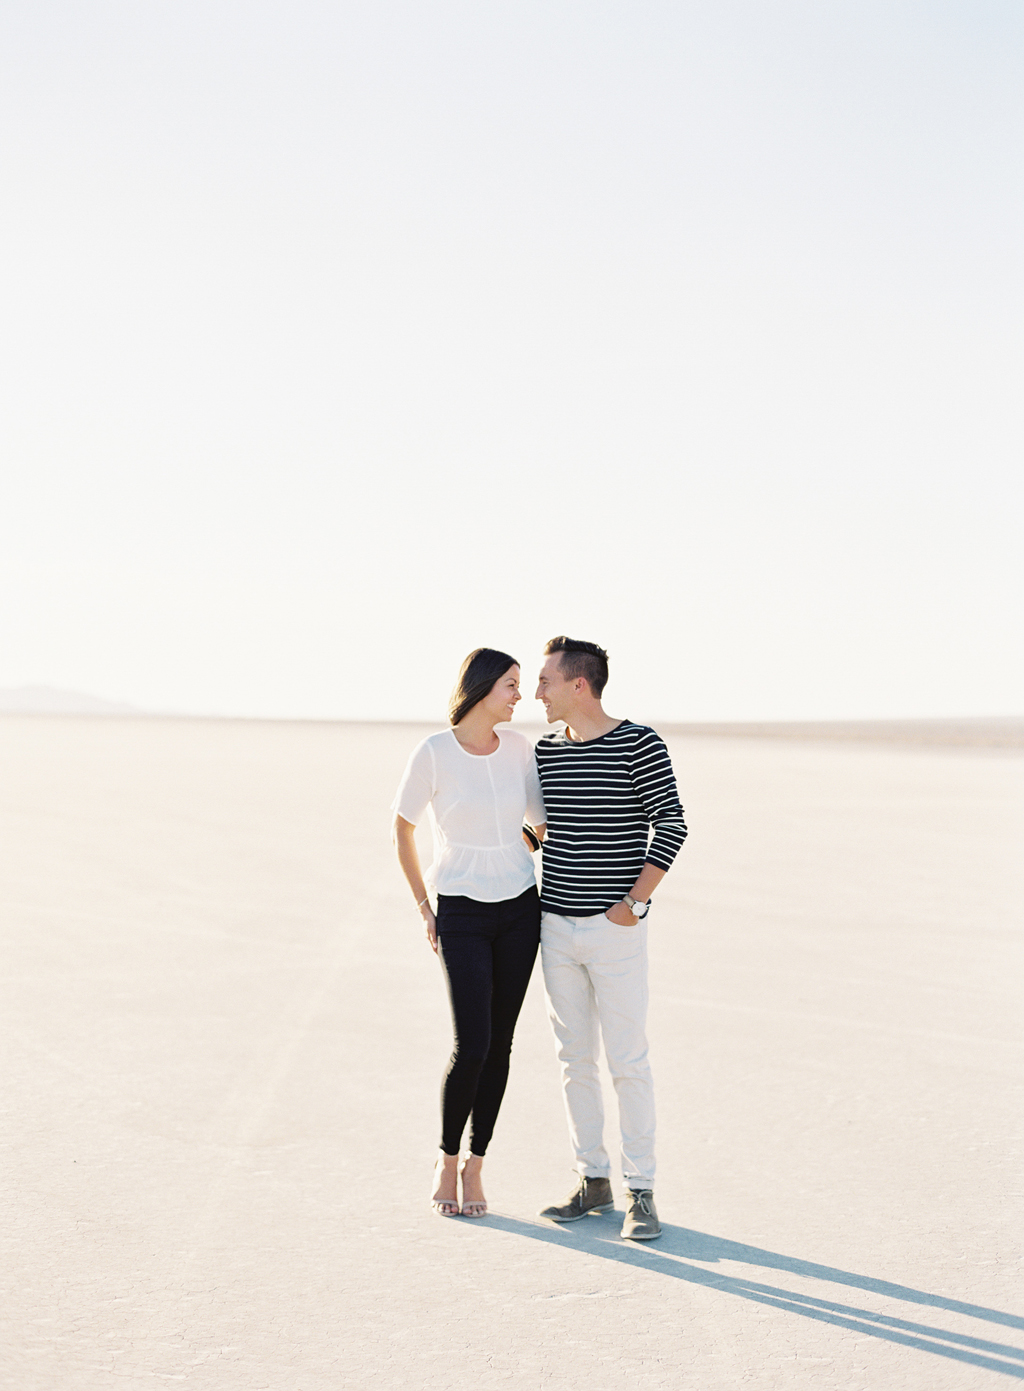 brandon kidd and kristin kidd pose in the California Desert for portraits.